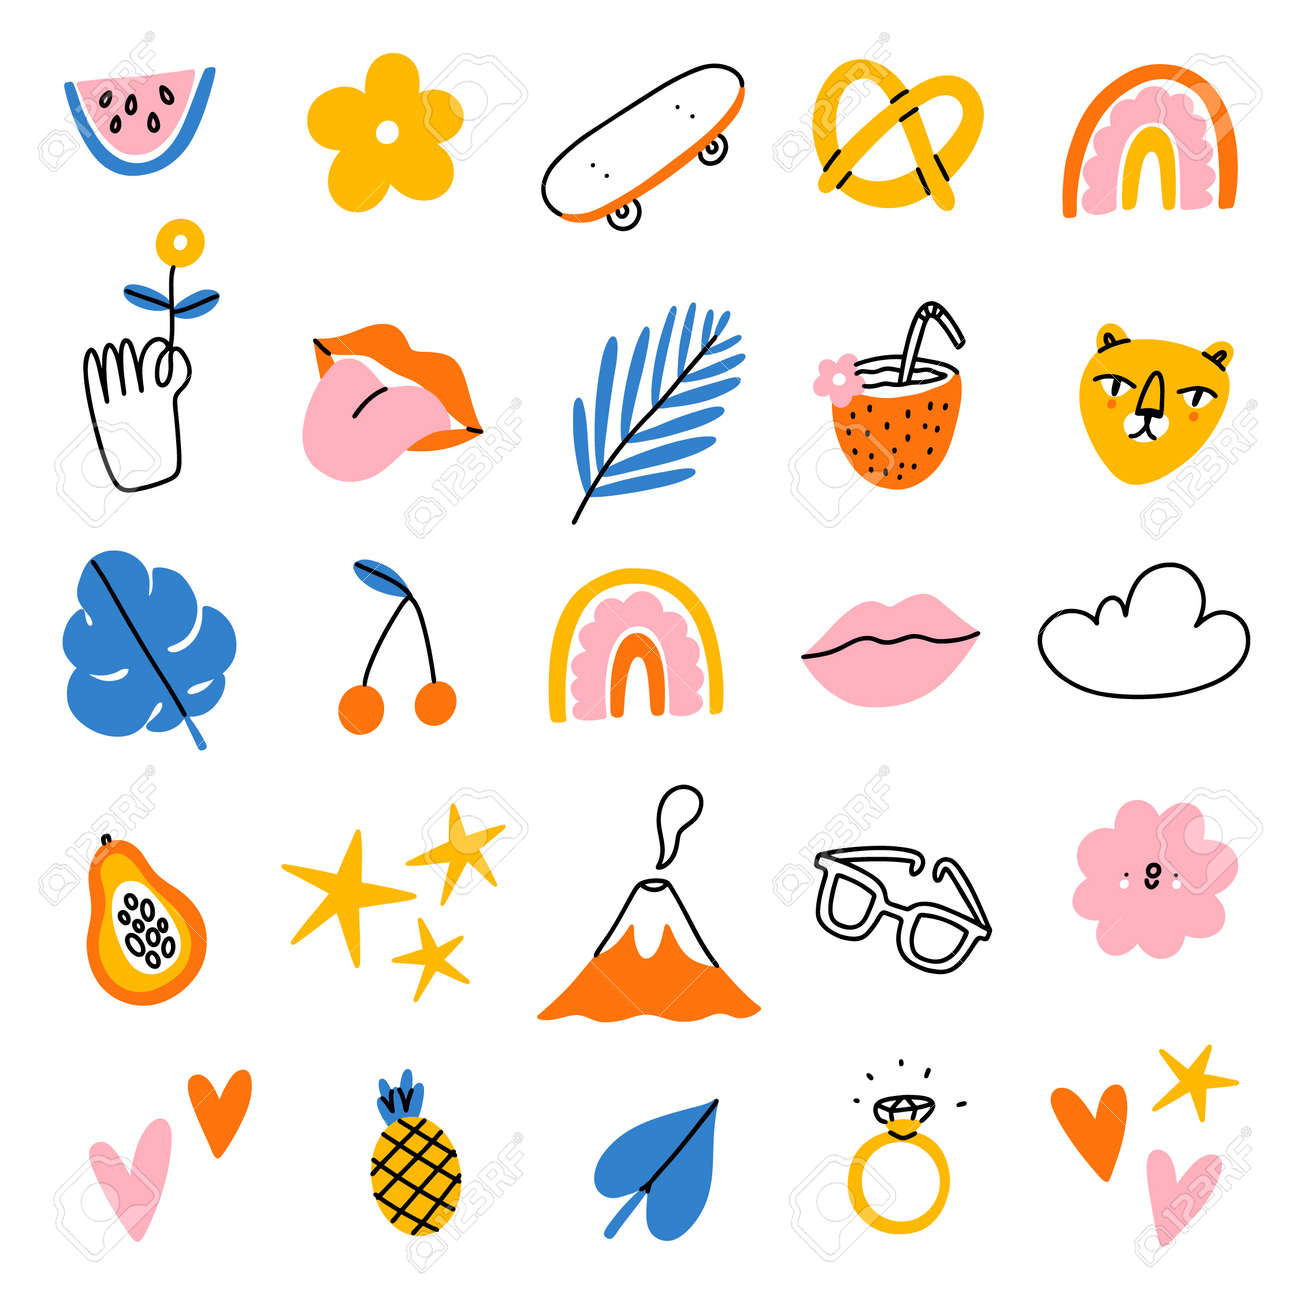 Funky tropical summer vector illustrations clip art, set of 20 icons, isolated on white background - 170268197